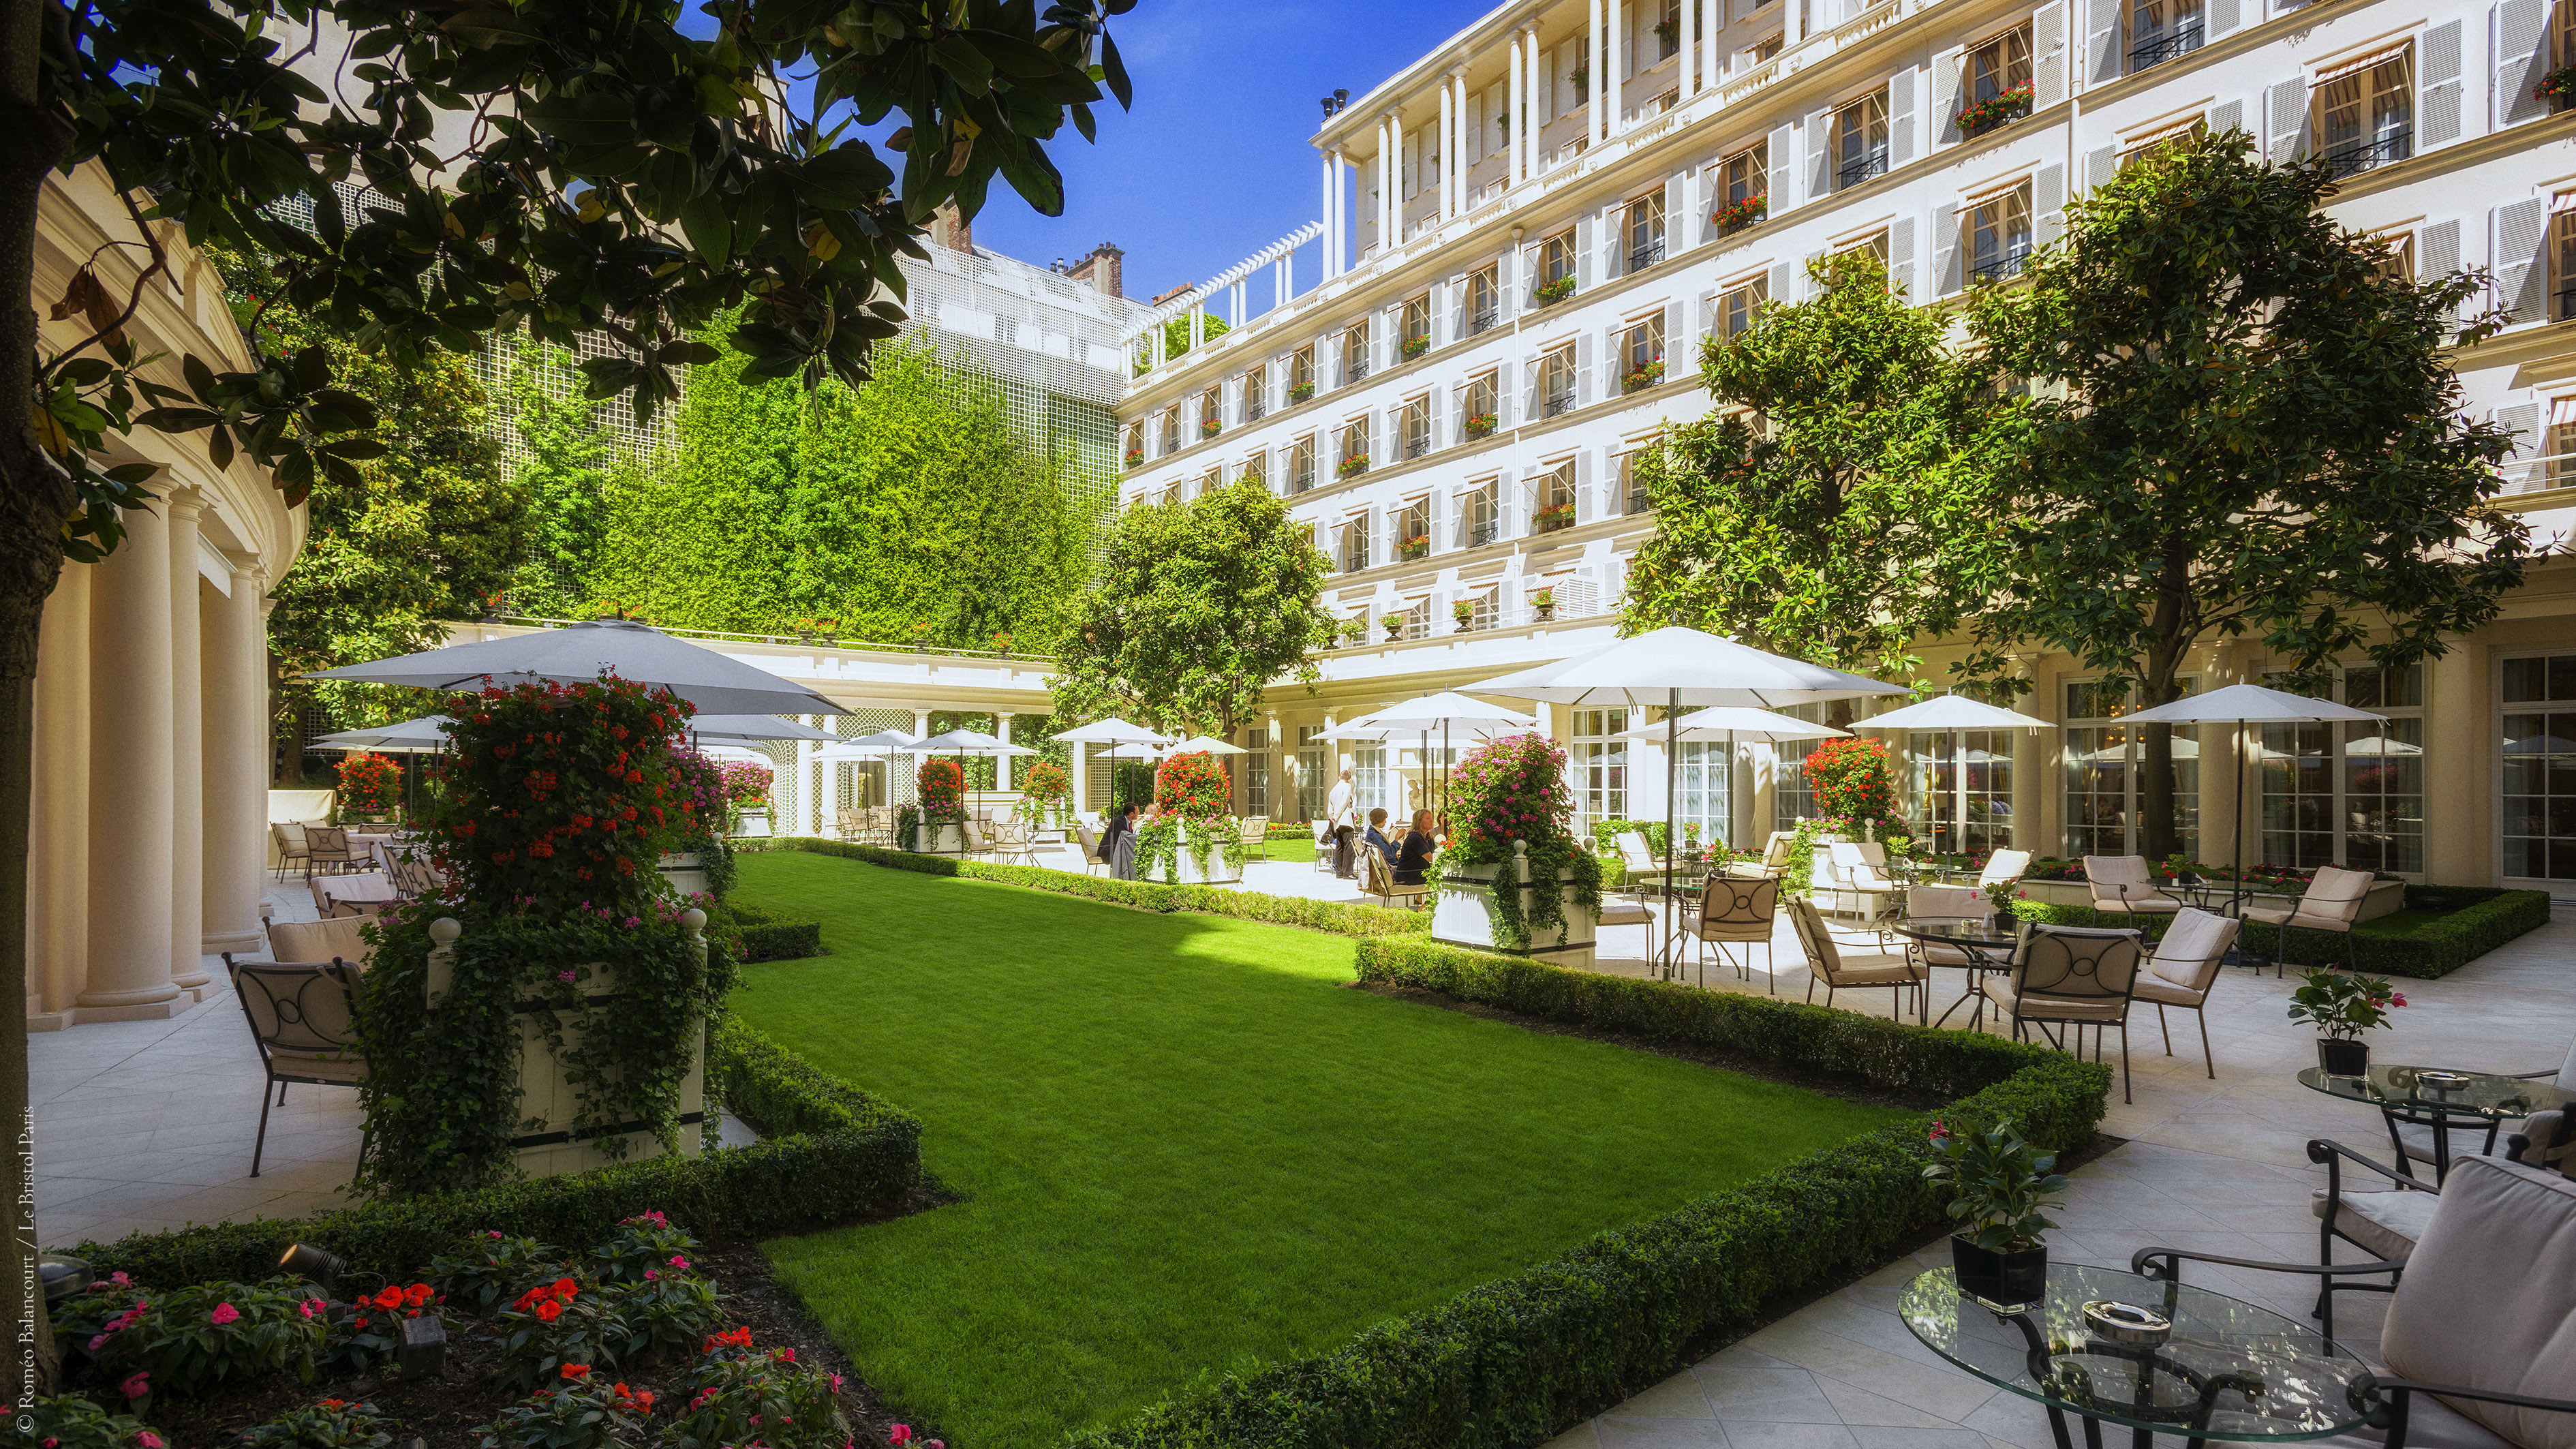 Le Roc Hotel Paris